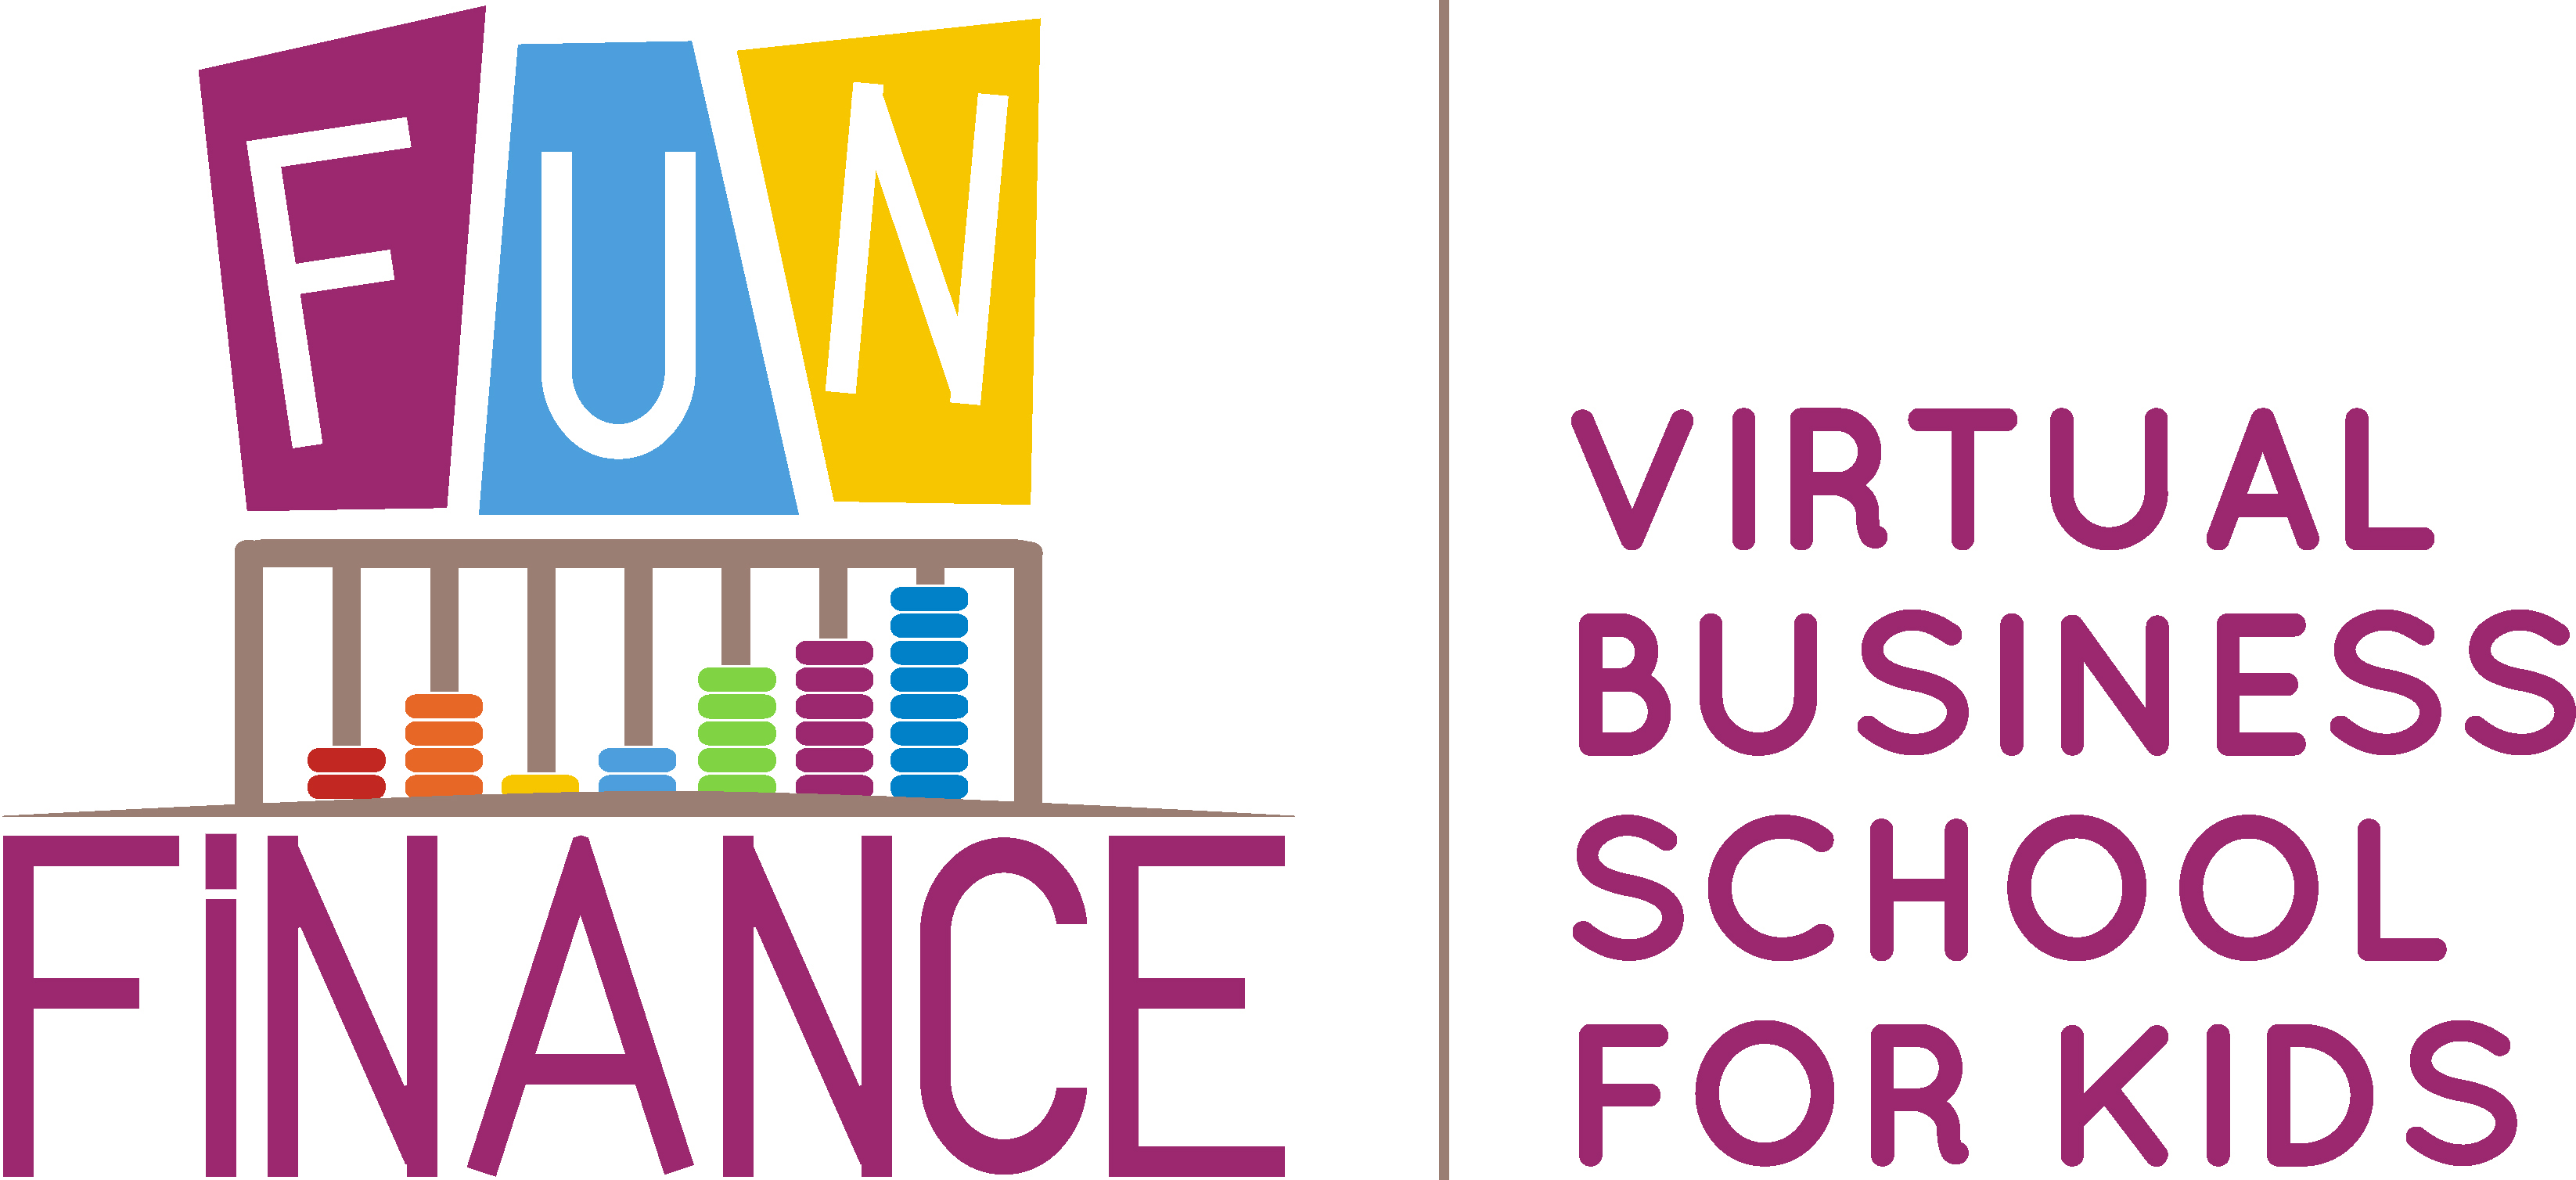 FunFinance Virtual Business School